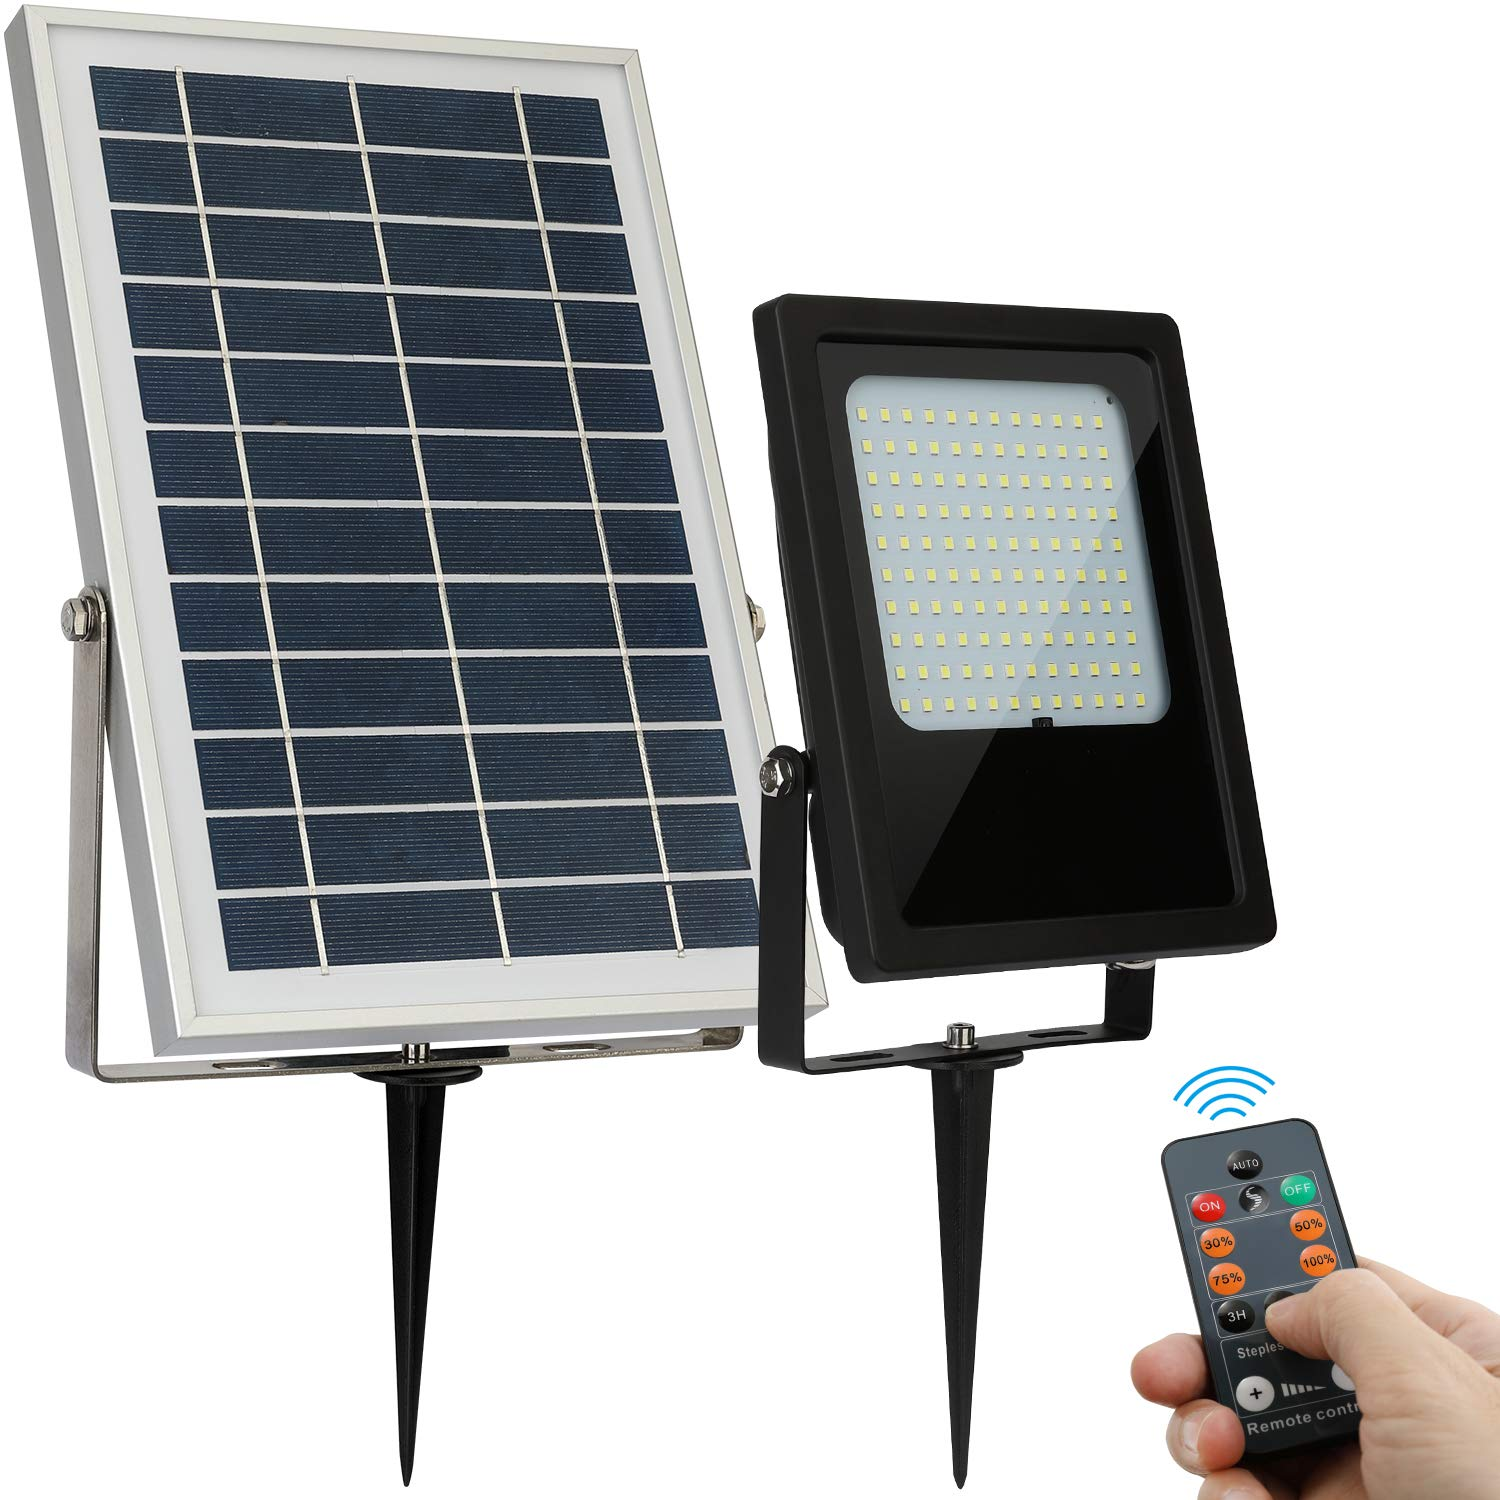 Solar Floodlight Outdoor 120 LED IP65 Waterproof with Remote Auto On Off Dusk to Dawn for Pathway Patio Garden Shed Yard and Driveway by GEN Solar LX600F